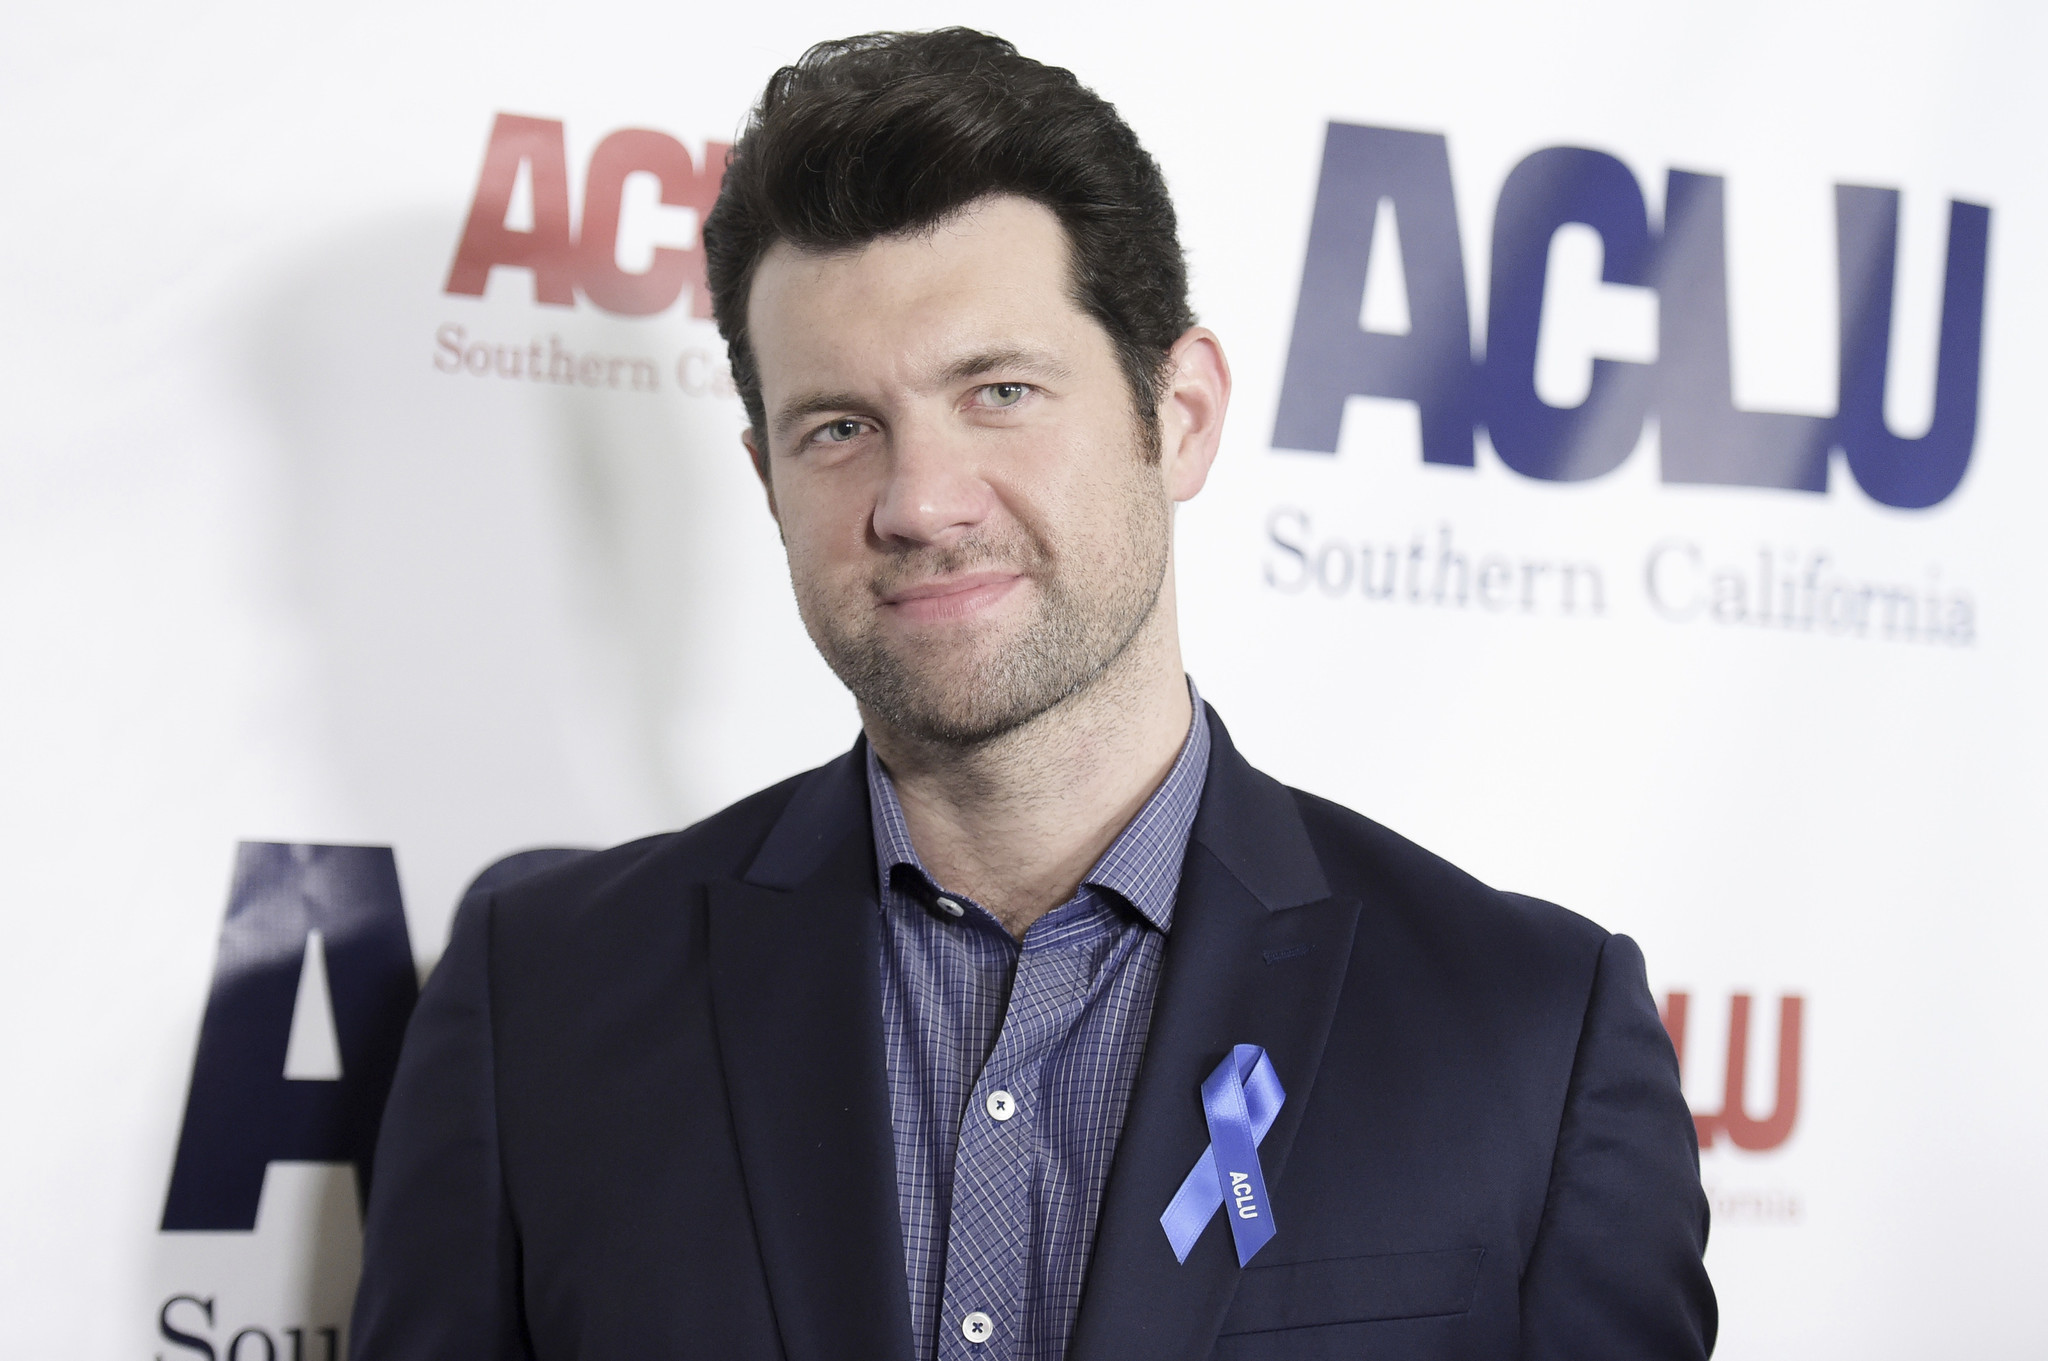 Billy Eichner cast as Drudge Report founder in 'American Crime Story: Impea...